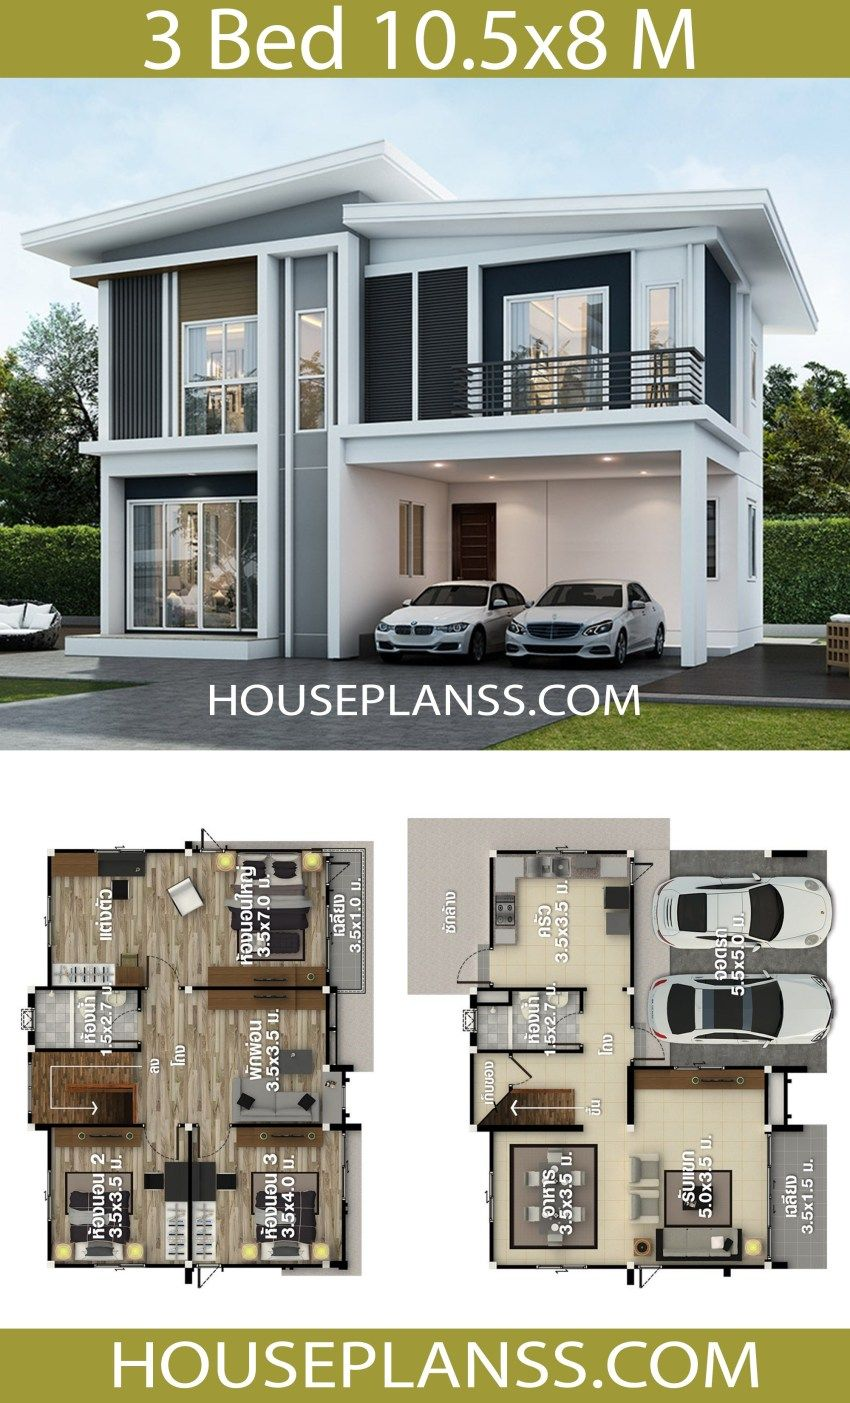 House Plans Idea 10 5x8 with 3 bedrooms is part of Model house plan, Two story house design, House architecture design, House front design, House designs exterior, Modern house plans - House Plans Idea 10 5x8 with 3 bedroomsThe House hasBuilding size (m X m)  10 50 x 8 00Land size (Sq m)  174Land size (Square wah)  44